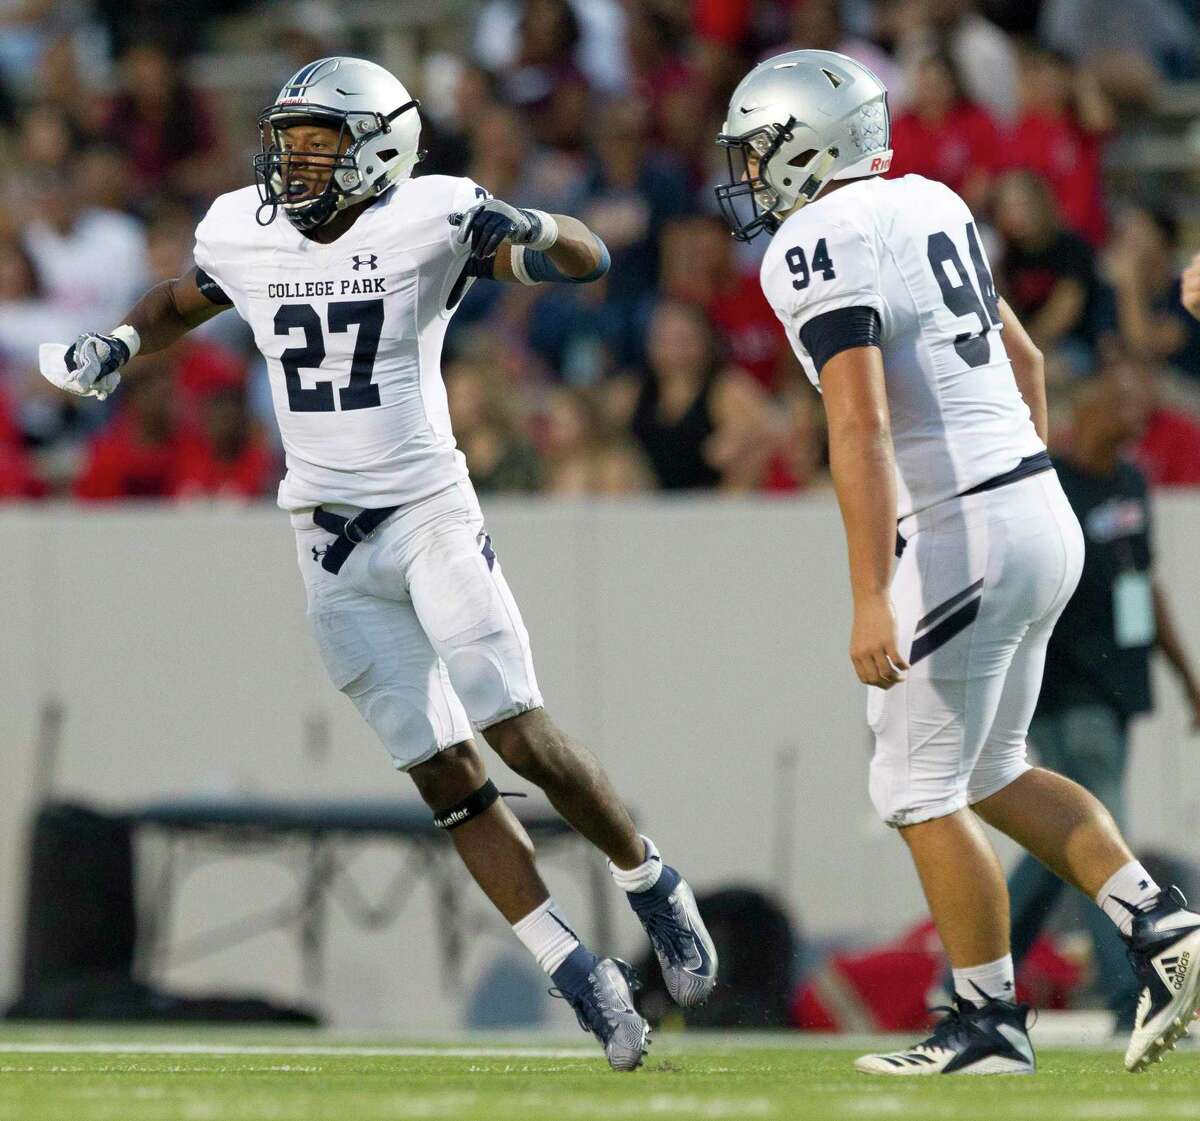 College Park defensive back Curt Evangelister (27) reacts after intercepting a pass by Aldine MacArthur quarterback RaShaun Jackson during the third quarter of a non-district high school football game at W.W. Thorne Stadium, Saturday, Sept. 7, 2019, in Houston.